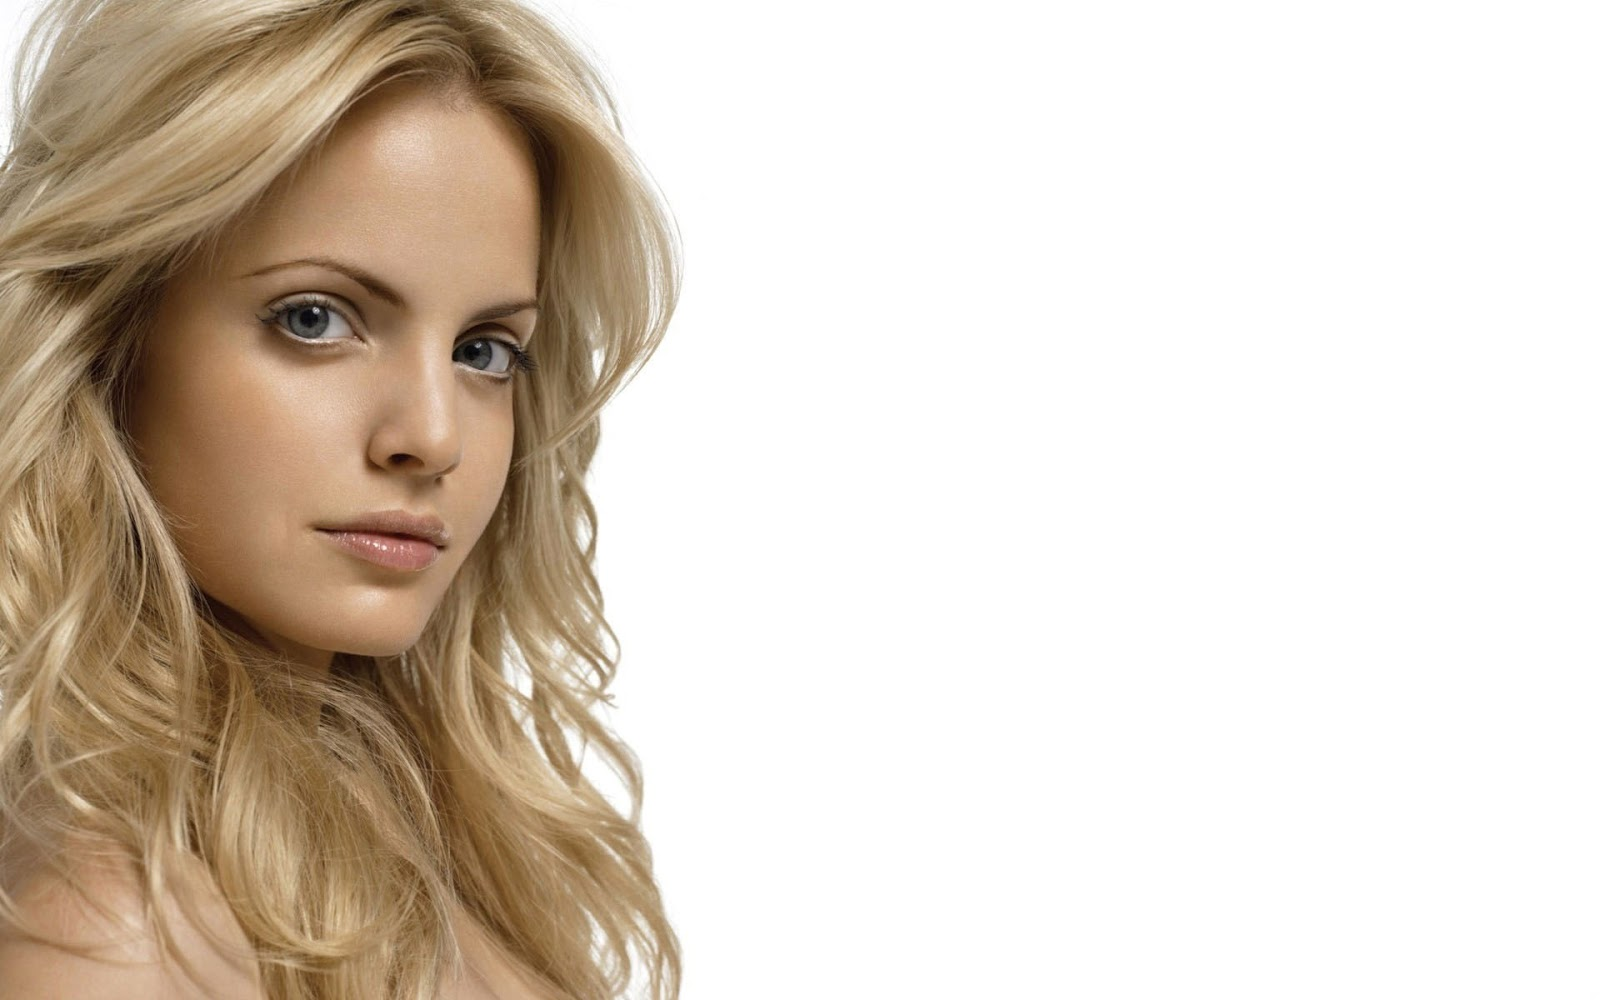 Mena Suvary Blonde American Beauty Young Amazing HD Wallpaper